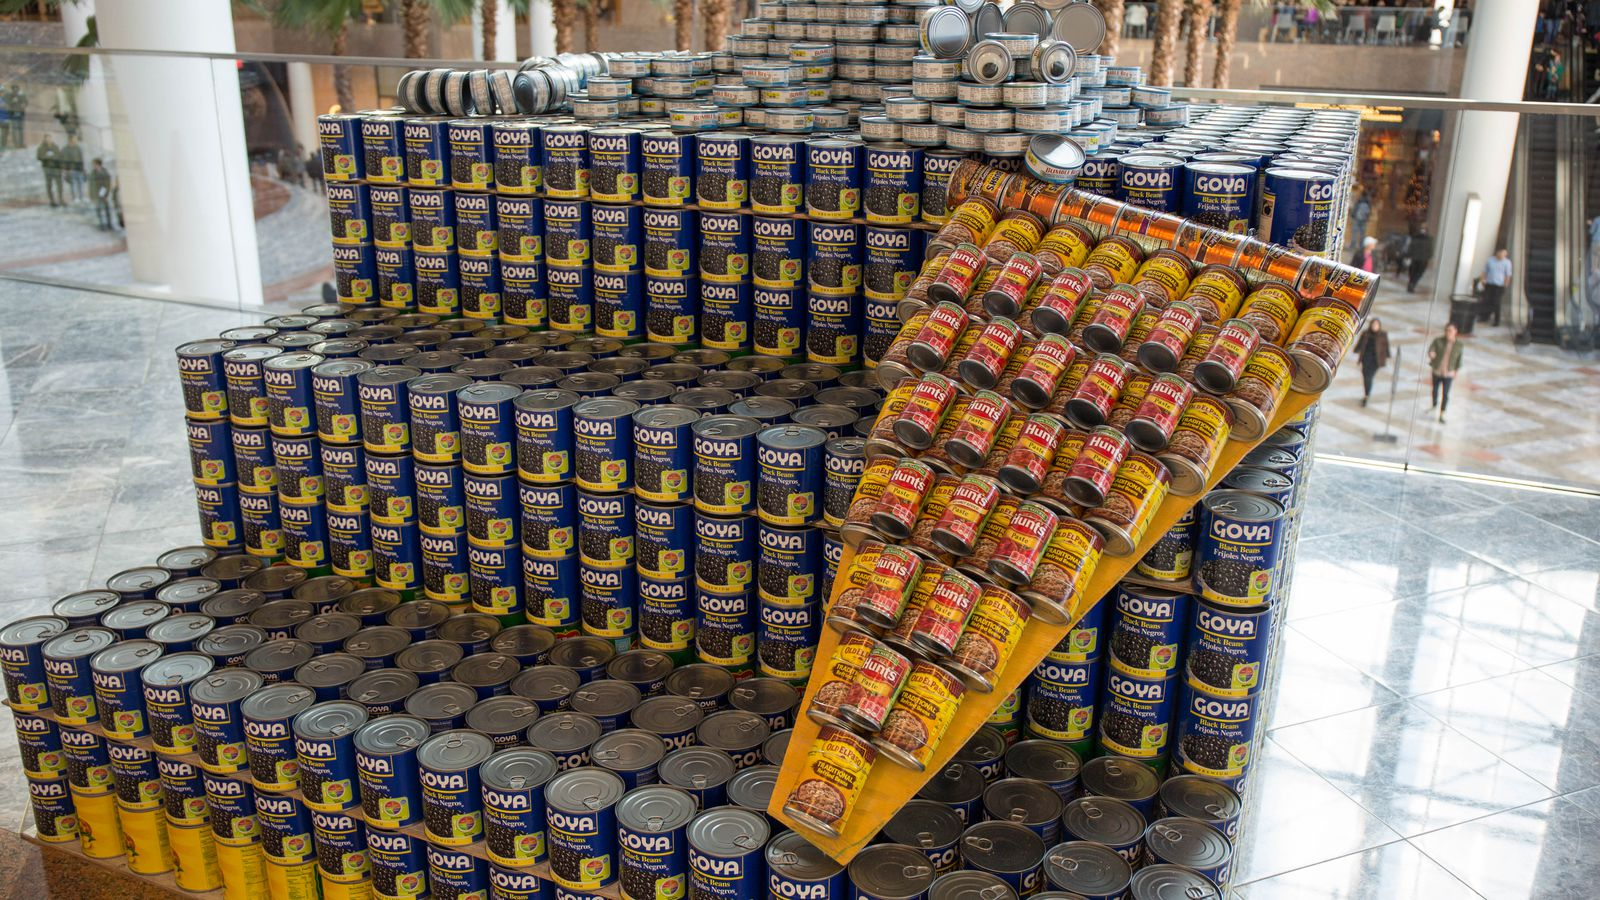 See the Guggenheim Museum and Pizza Rat made from canned food - Curbed NY